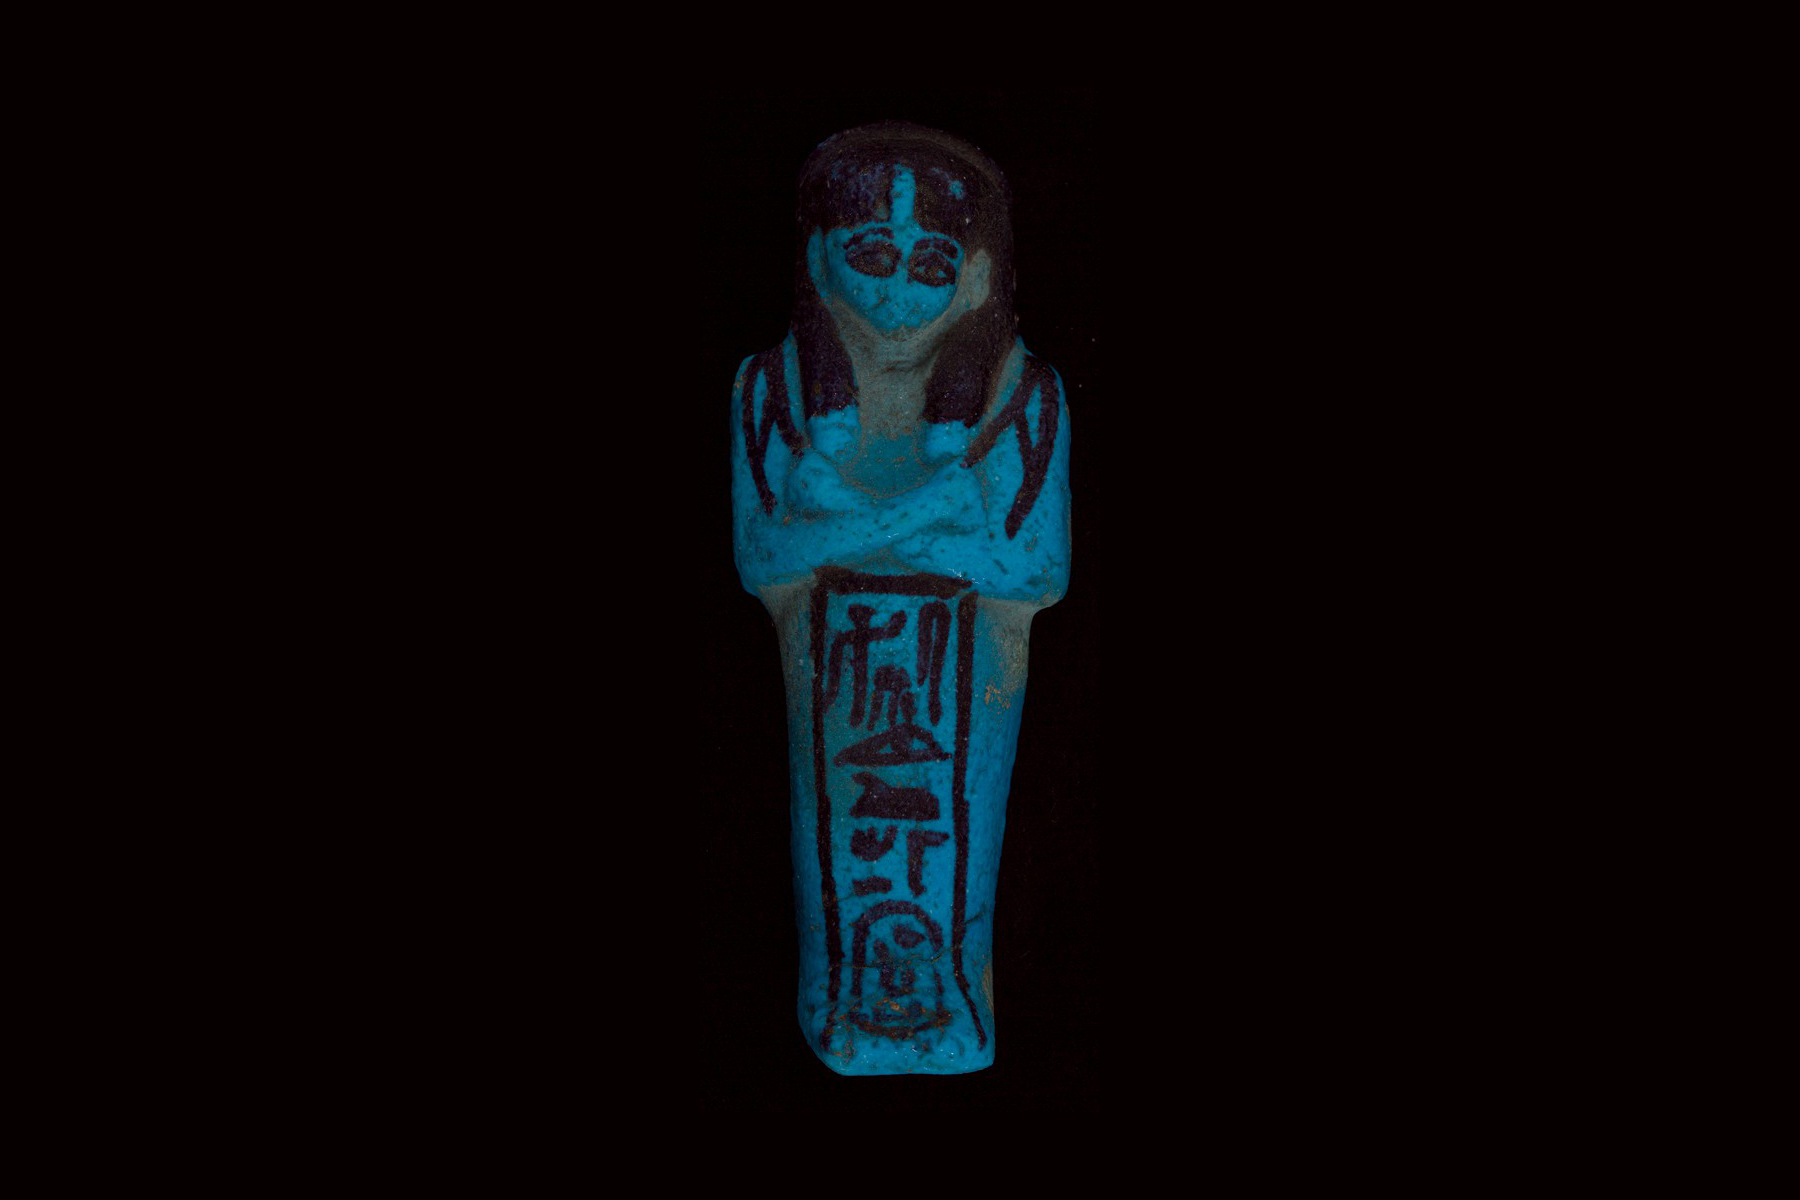 A mummiform figurine of blue faience (ceramic) has painted details in black ink, with a vertical hieroglyphic inscription at the front.